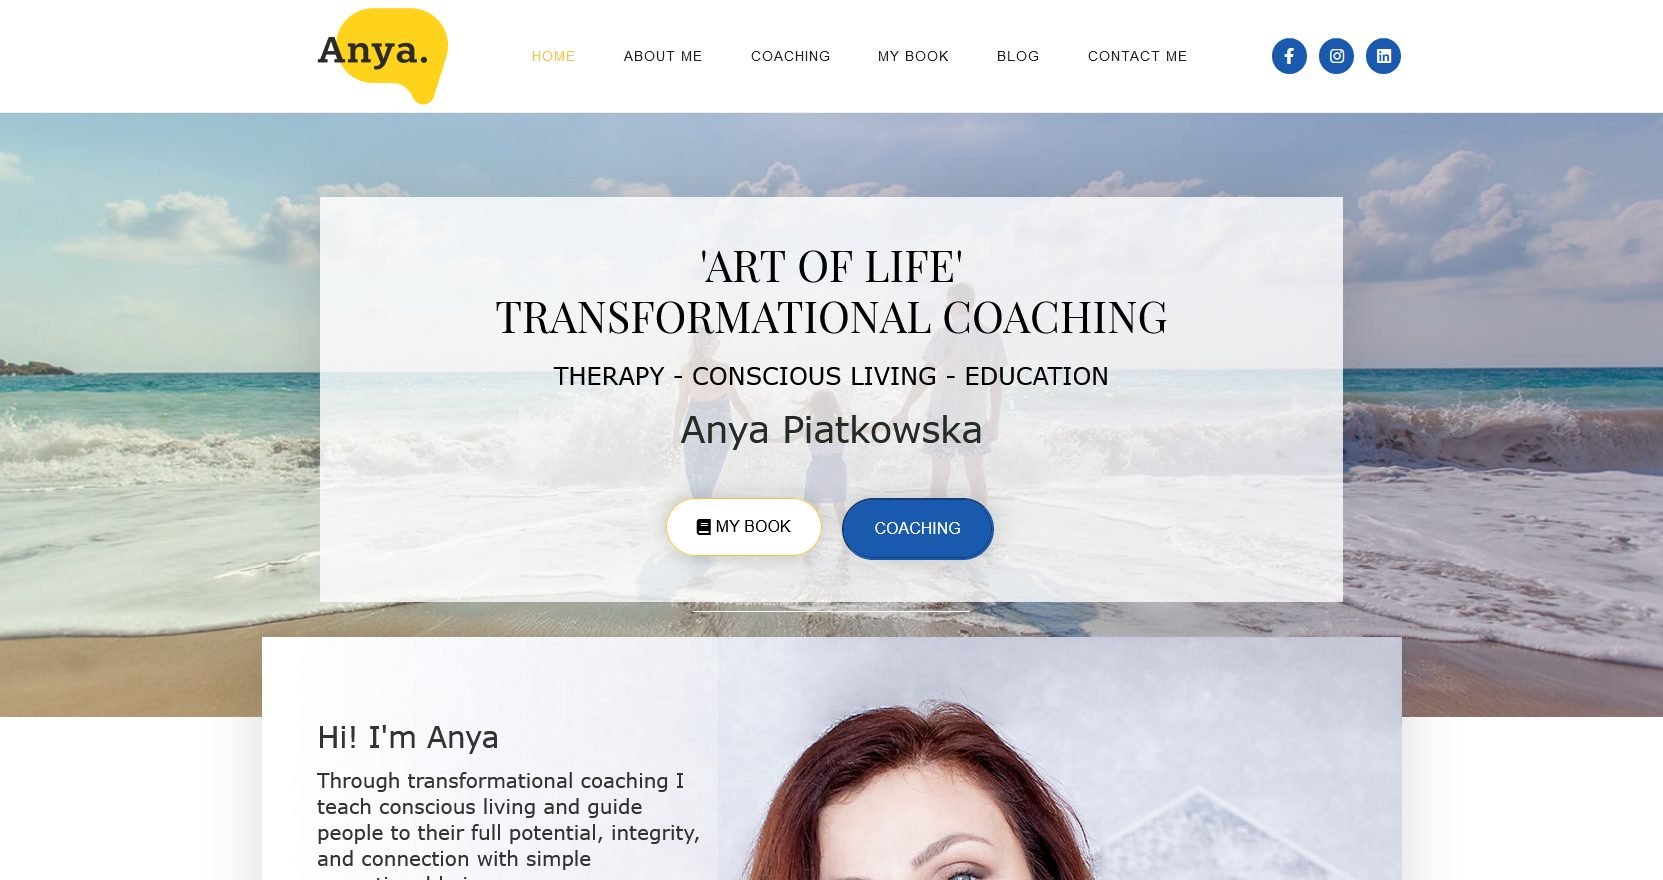 website design example - Transformational Coach website by Ian Middleton